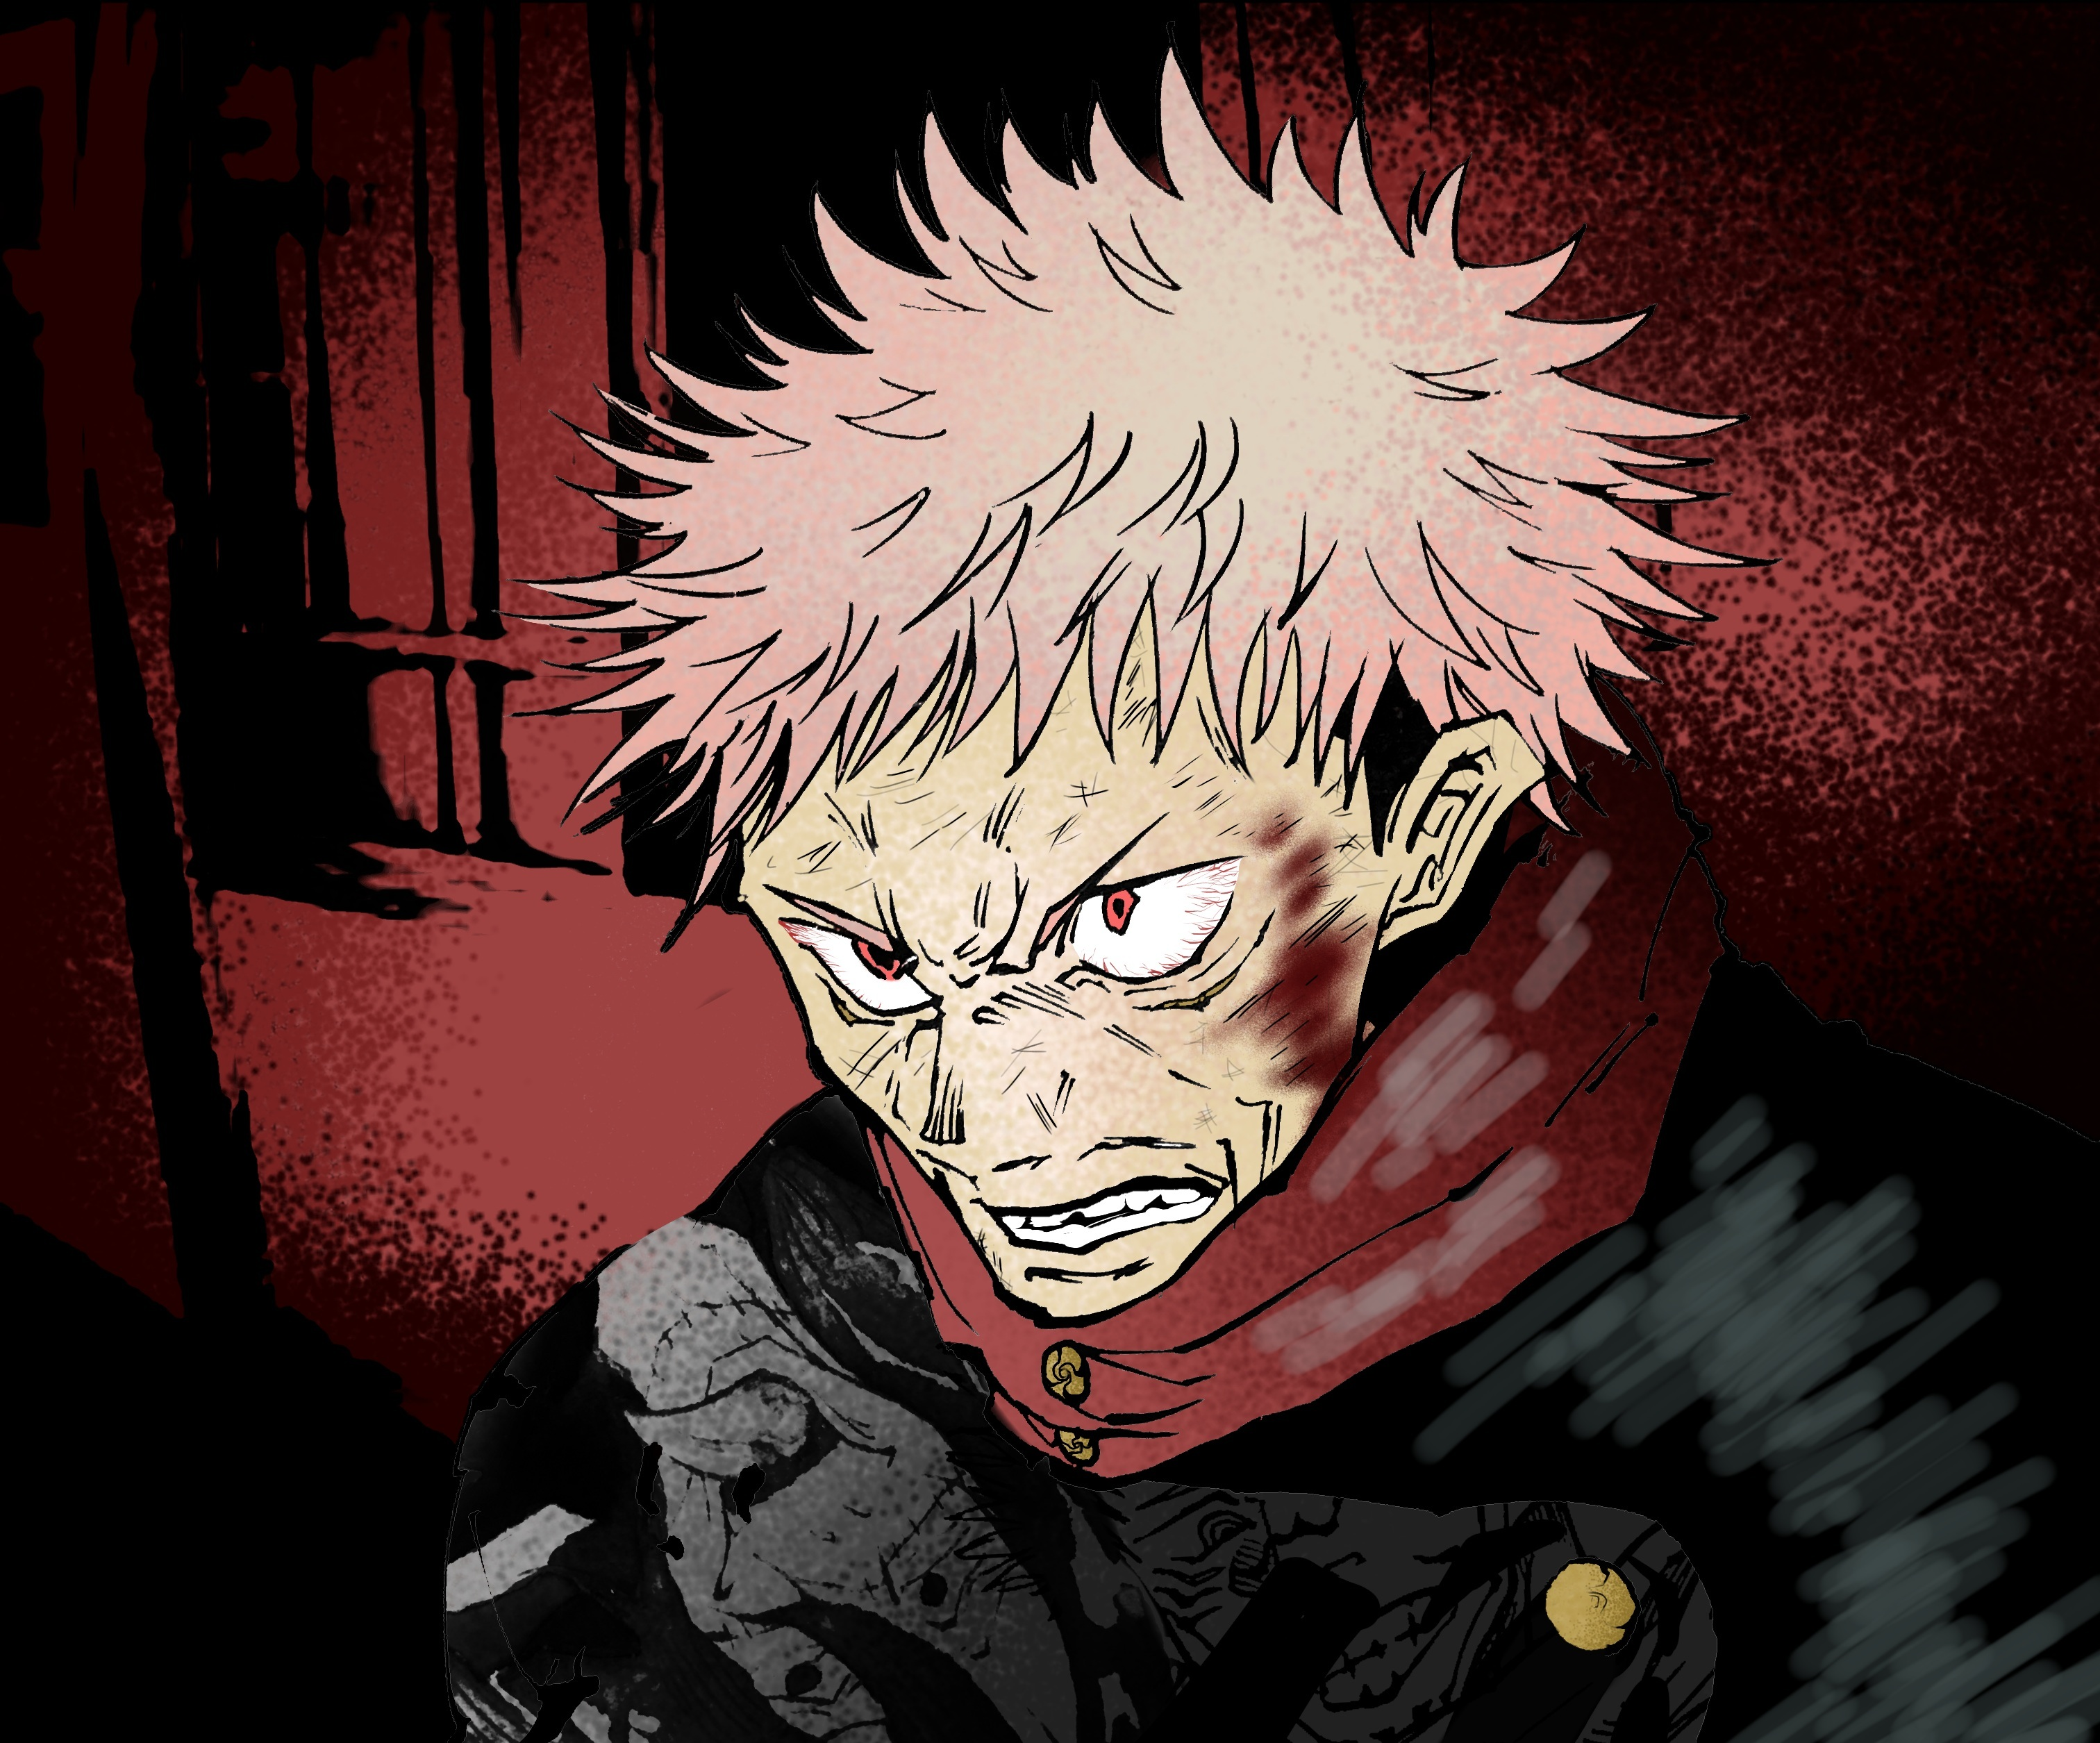 Jujutsu Kaisen Hd Wallpaper Background Image 3024x2510 Id 1000017 Wallpaper Abyss